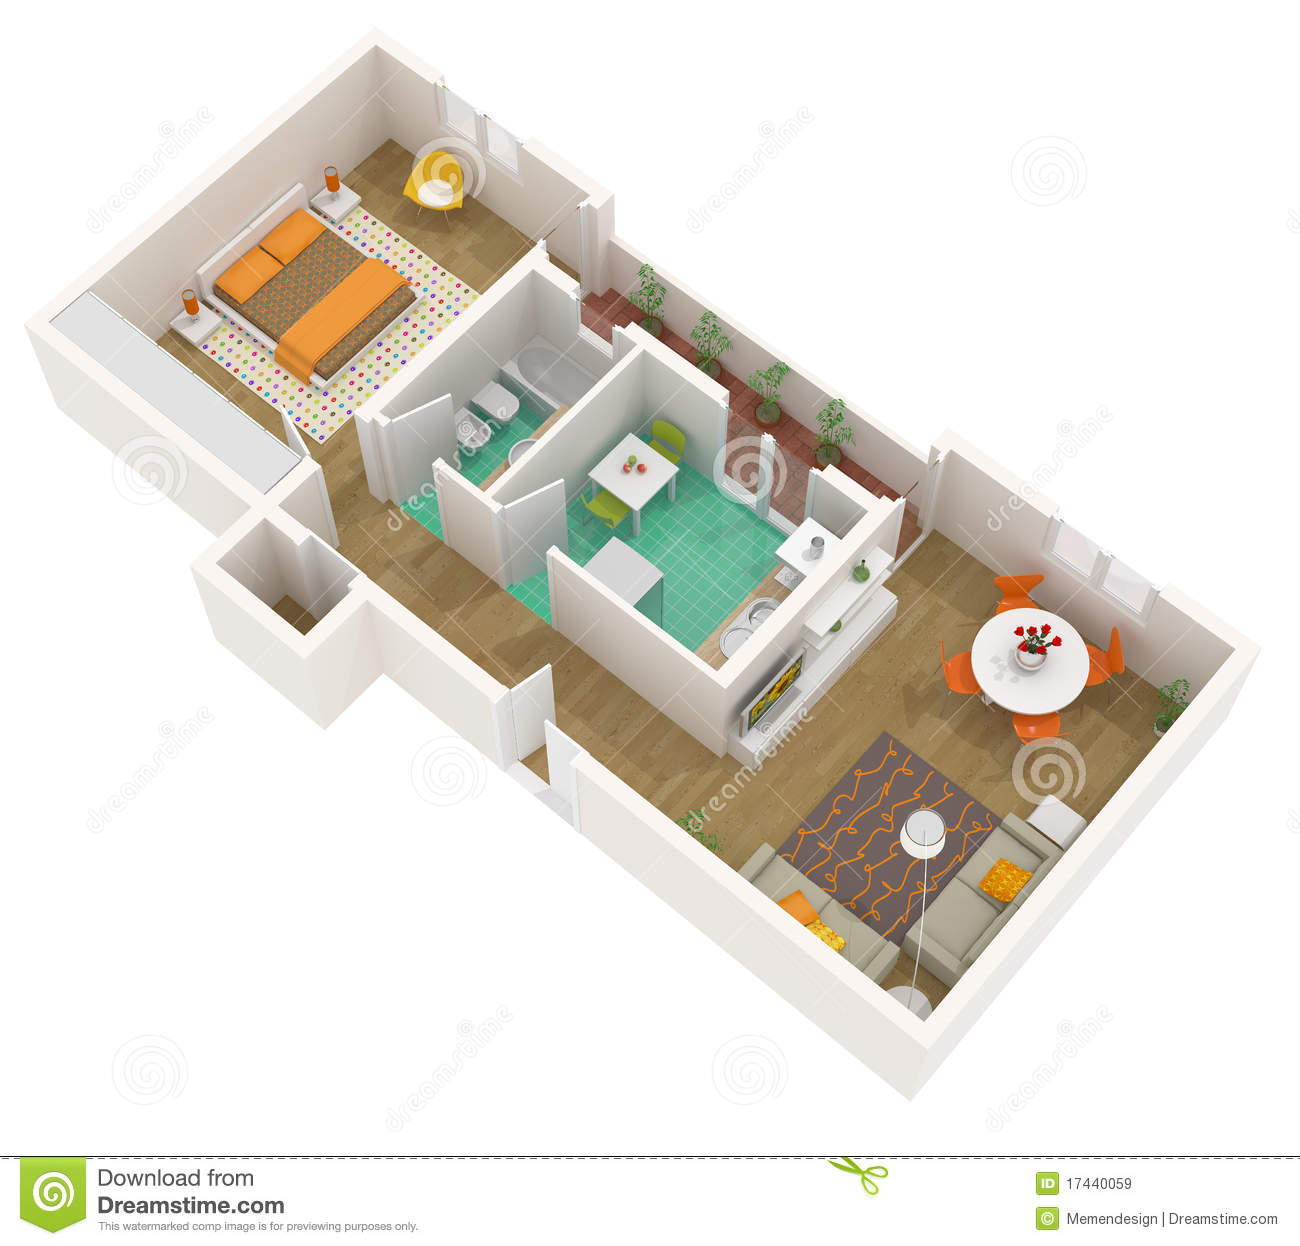 3d floor plan - apartment stock illustration. Illustration of ...